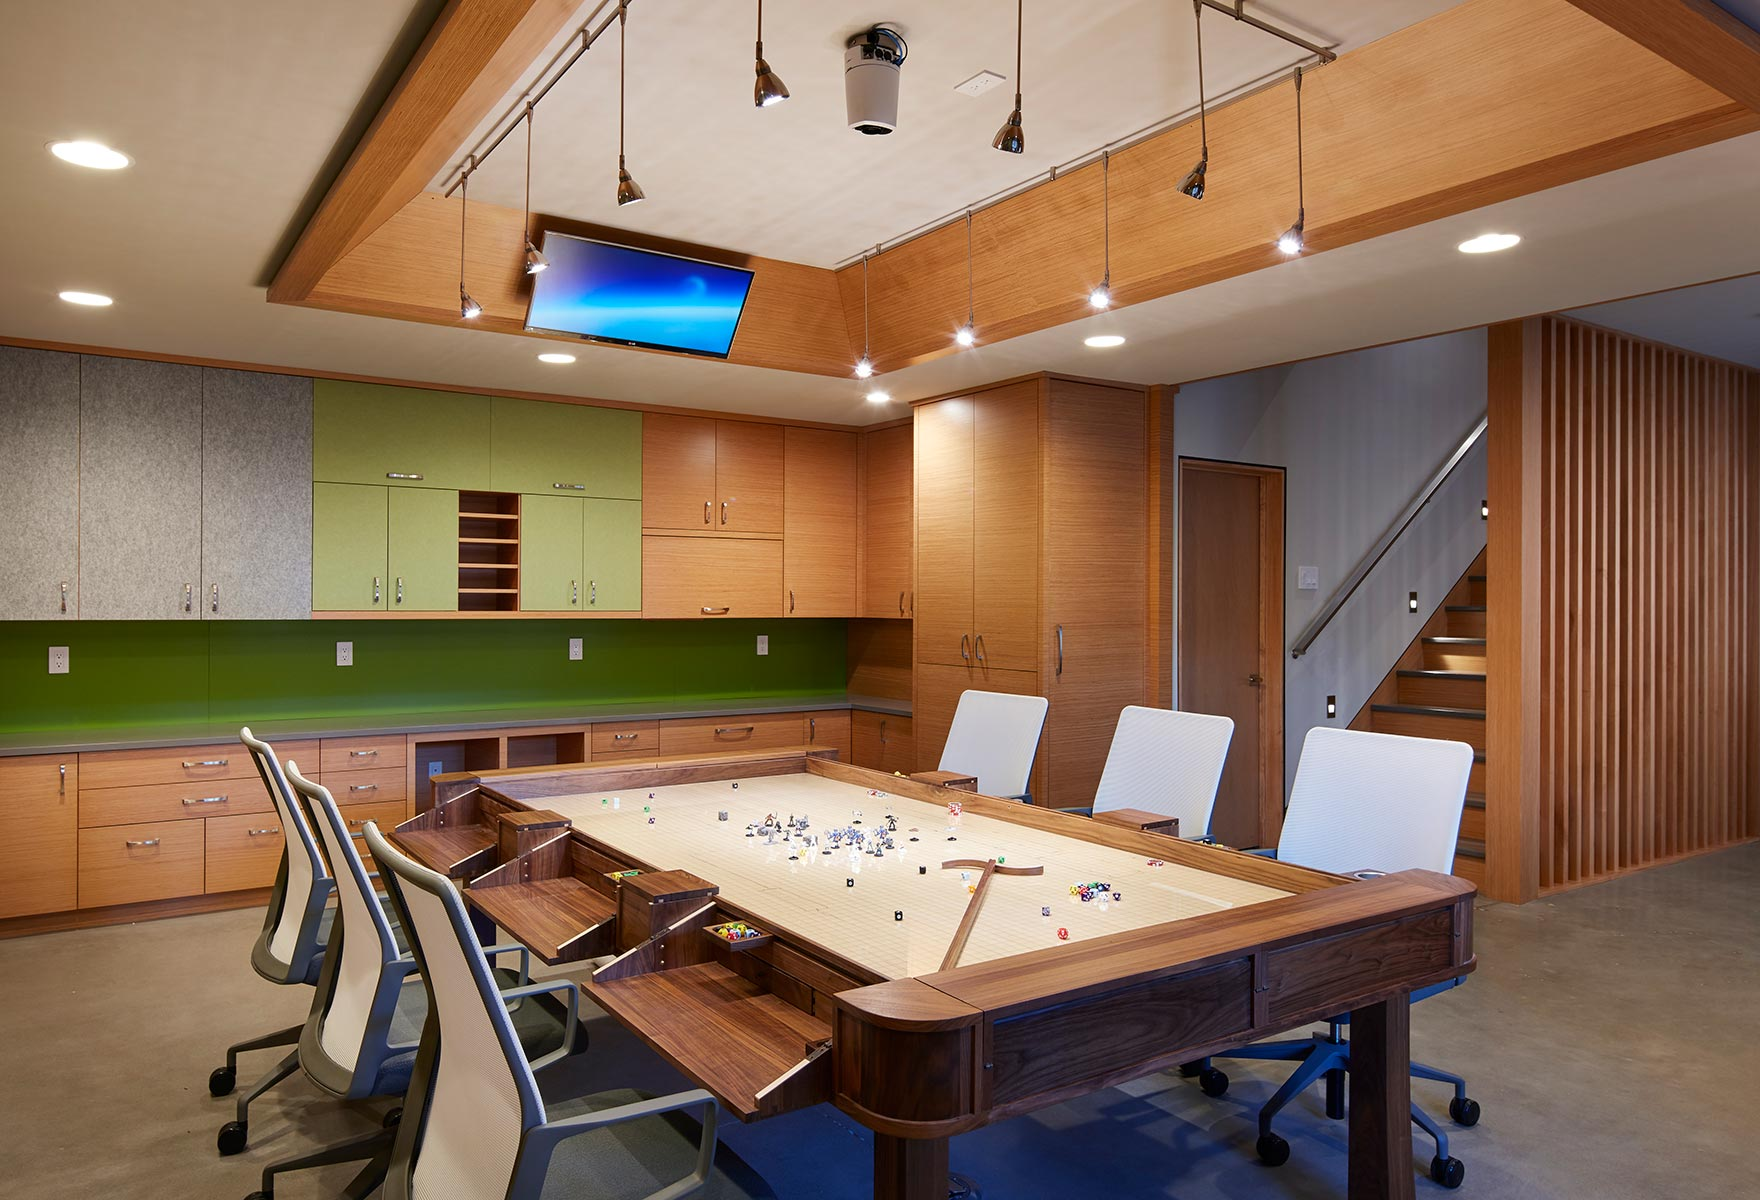 12-custom-gaming-table-room-minneapolis-interior-designer.jpg